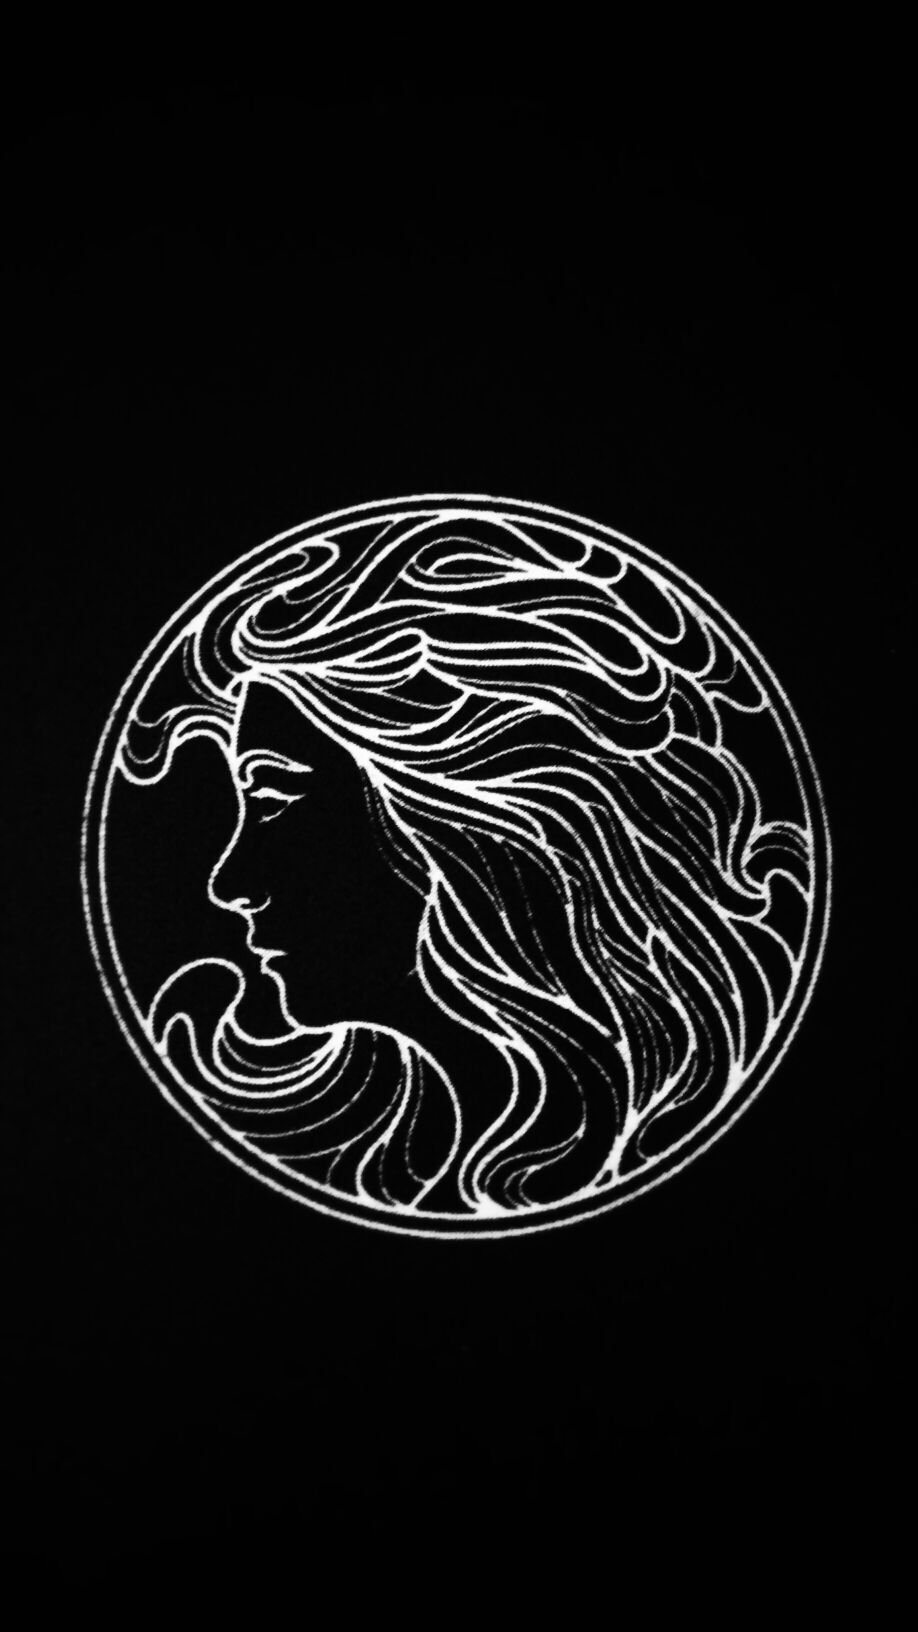 Made a wallpaper of my favorite Lorde logo : lorde.